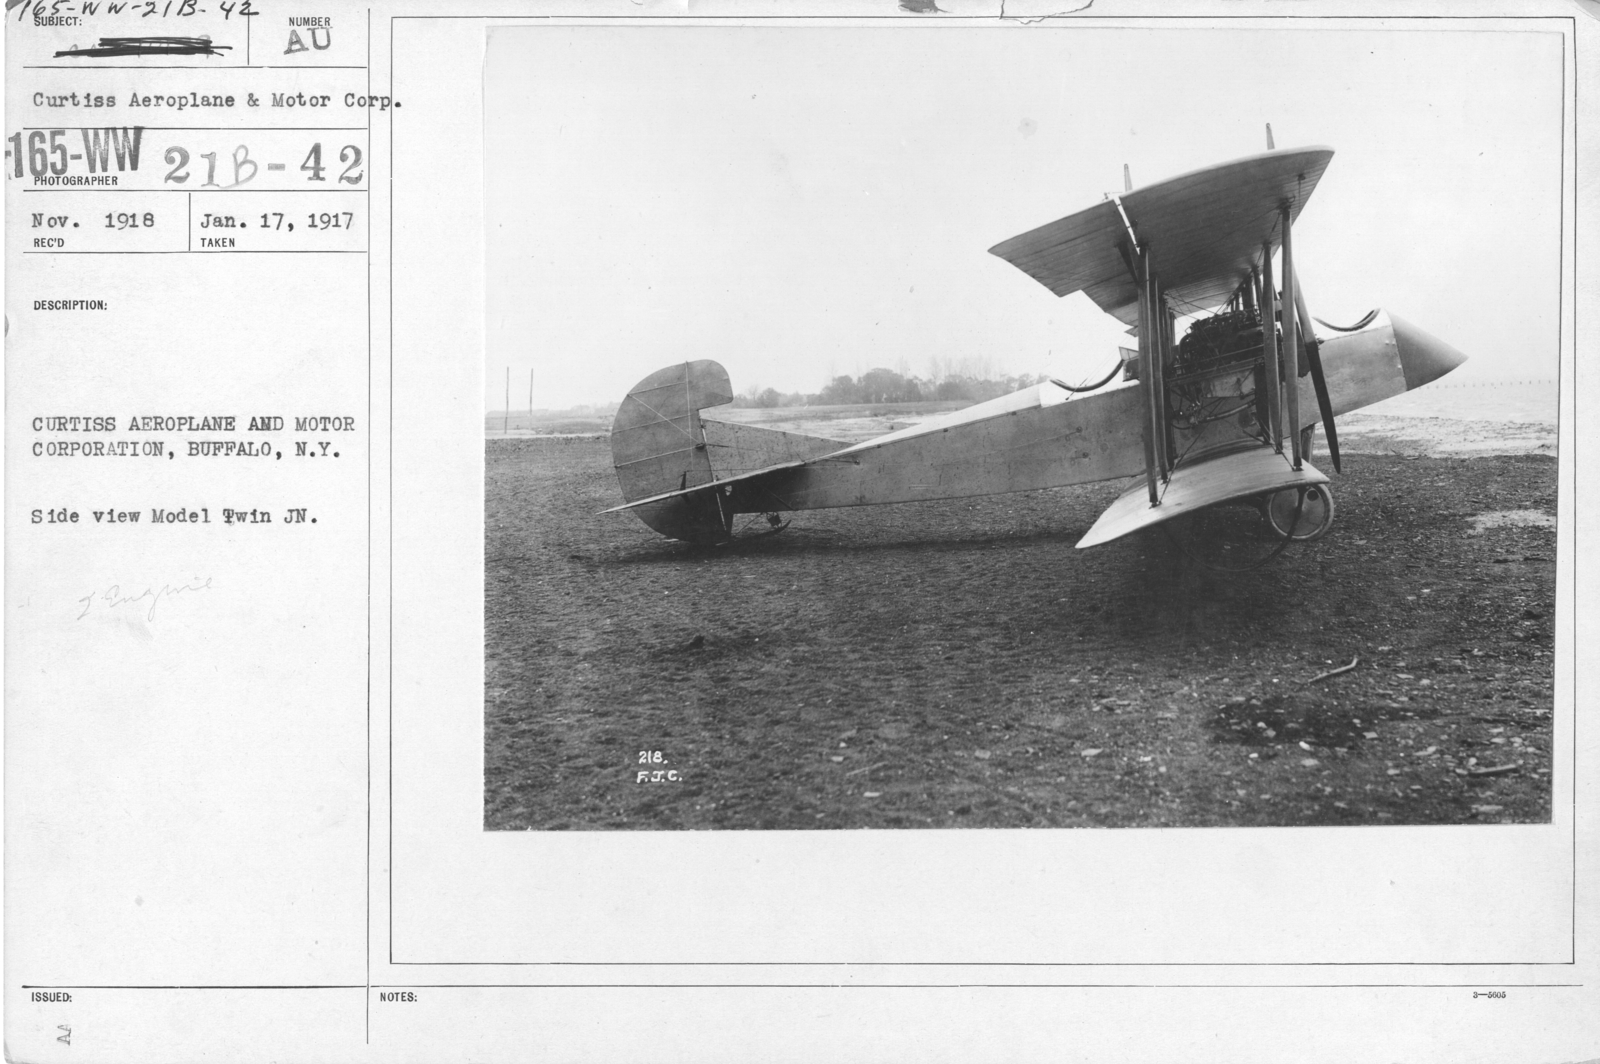 Airplanes - Types - Curtiss Aeroplane and Motor Corporation, Buffalo, N.Y. Side view Model Twin JN